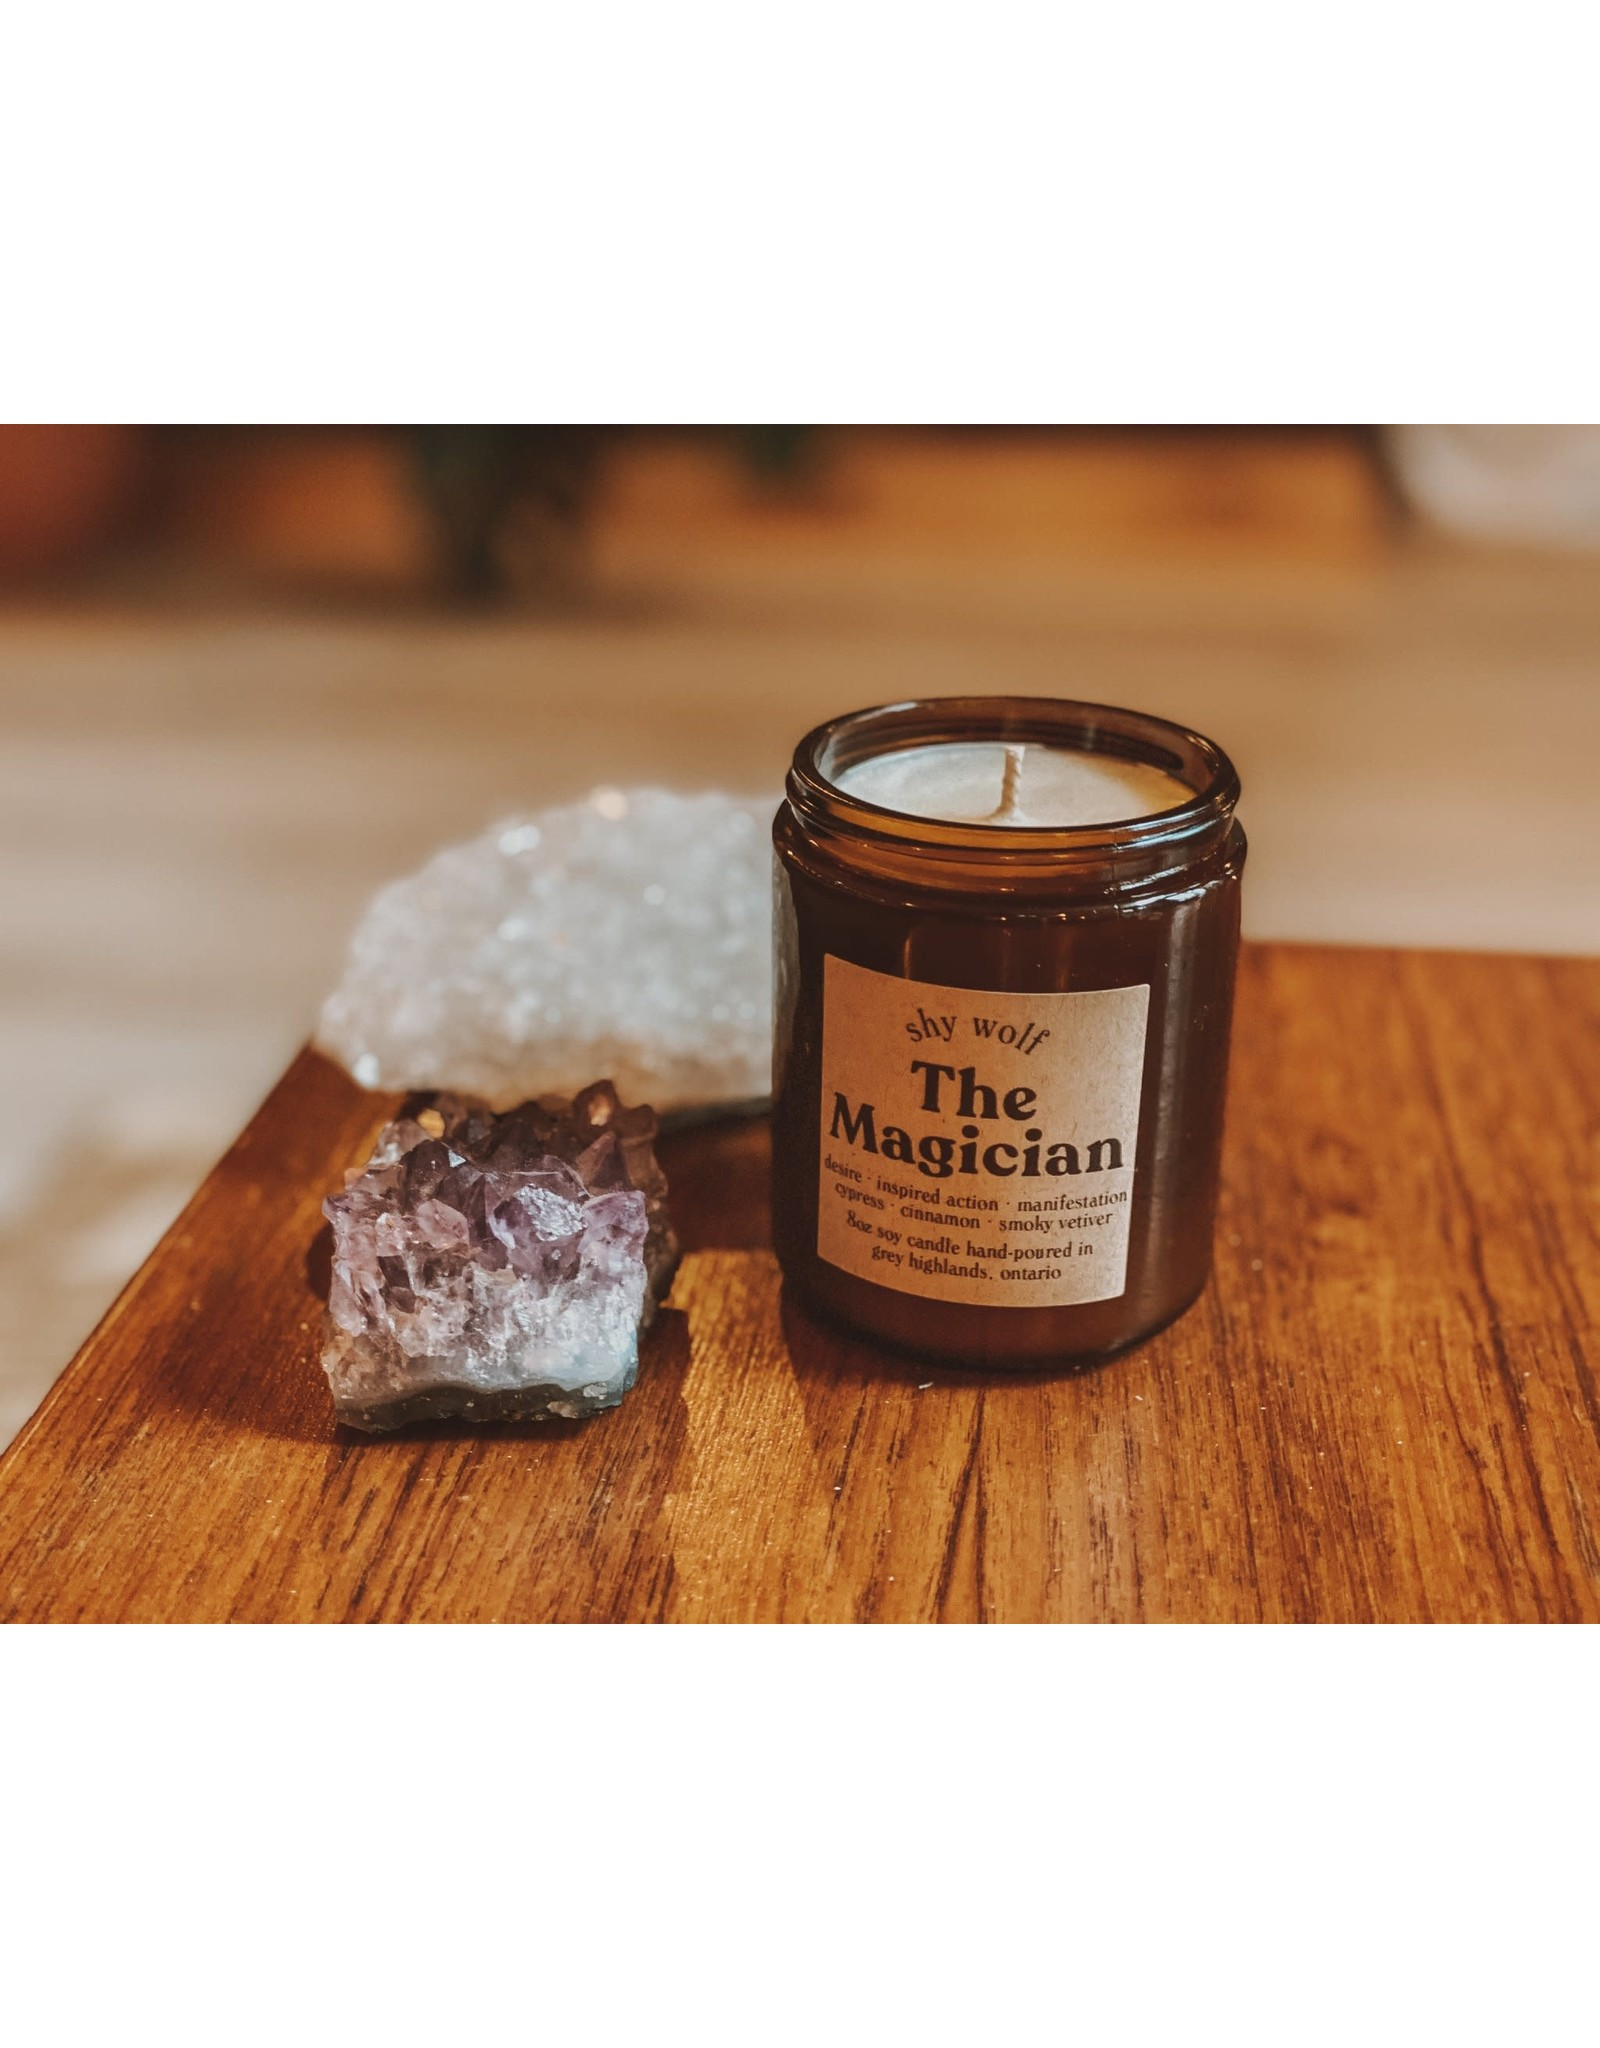 Shy Wolf - The Magician Candle - 8 oz